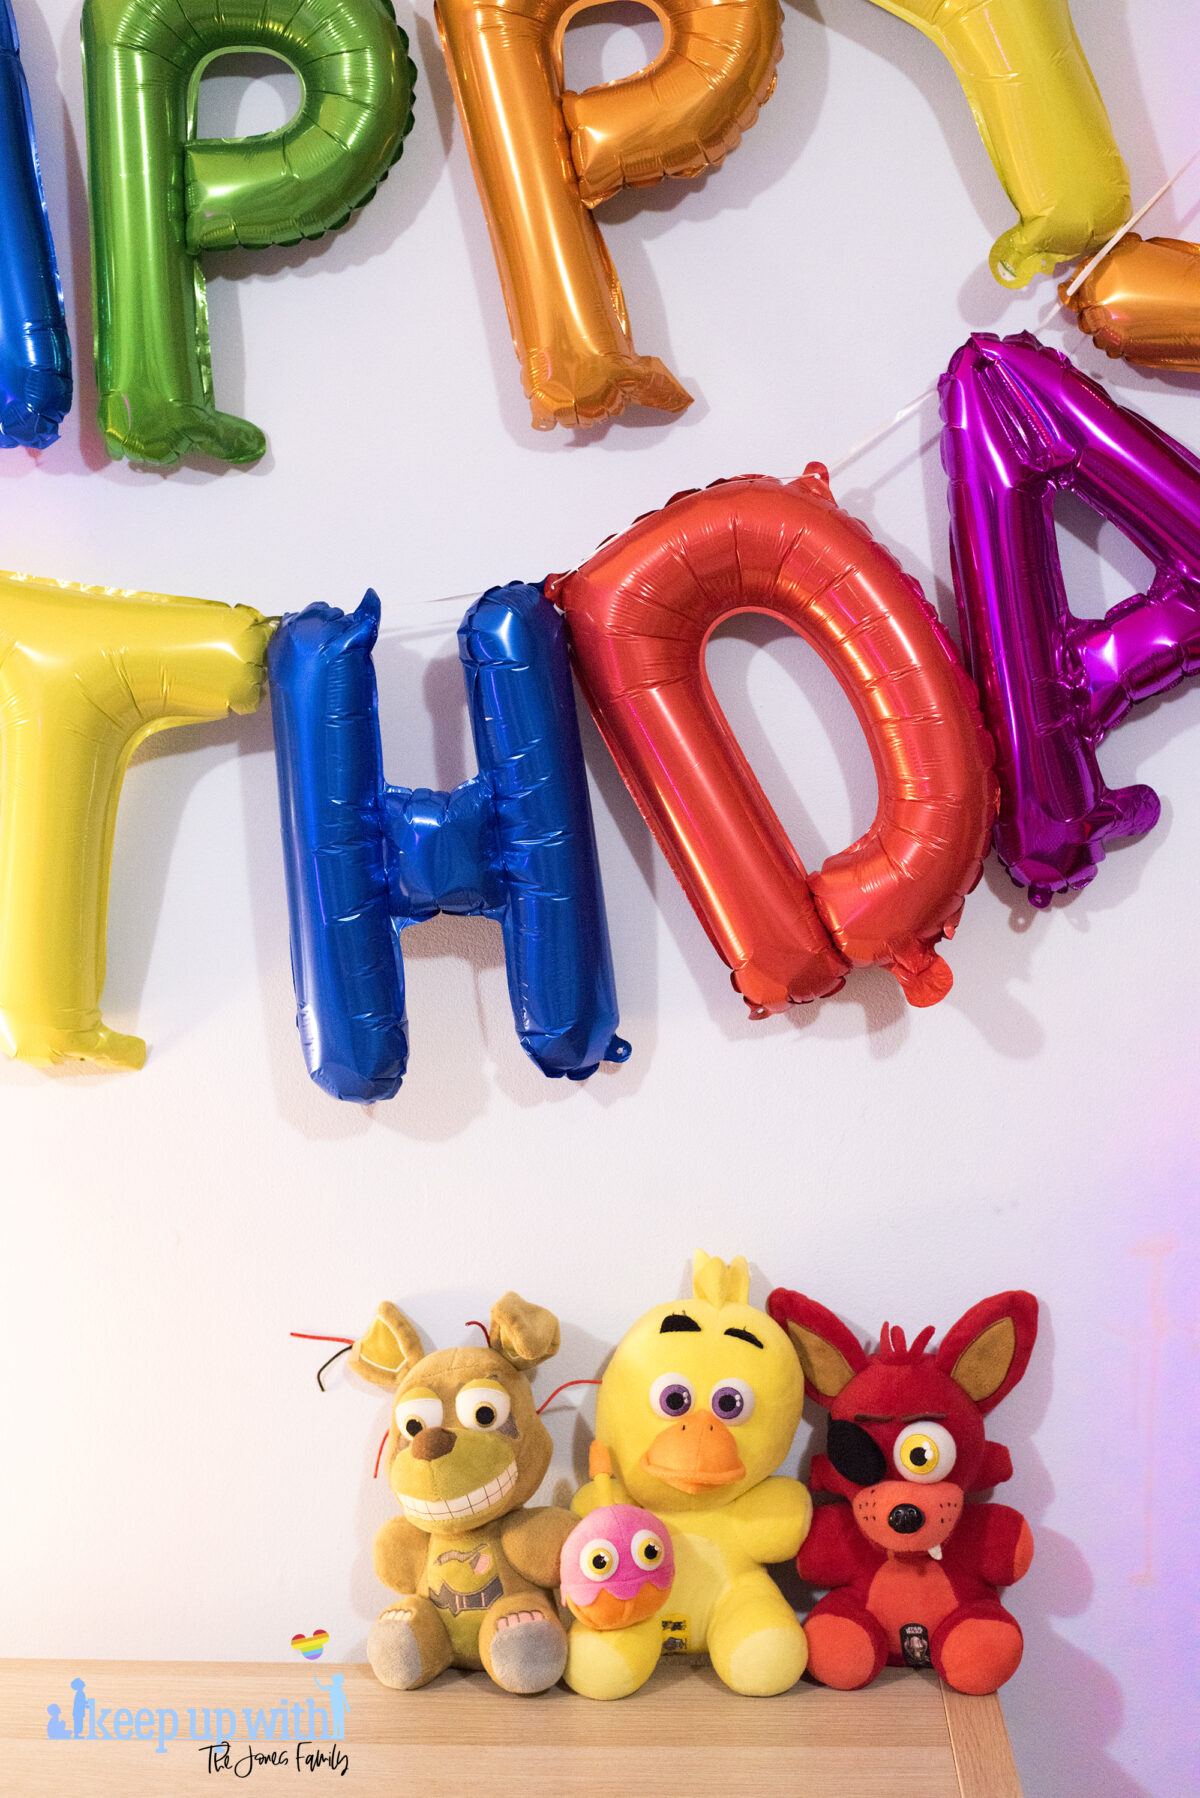 Image shows three Five Nights at Freddy's large plush toys. Foxy, Chica and Springtrap. They are sat on a wooden sideboard against a pale blue wall and the coloured happy birthday balloons are on the wall in the background. Image by keep up with the jones family.